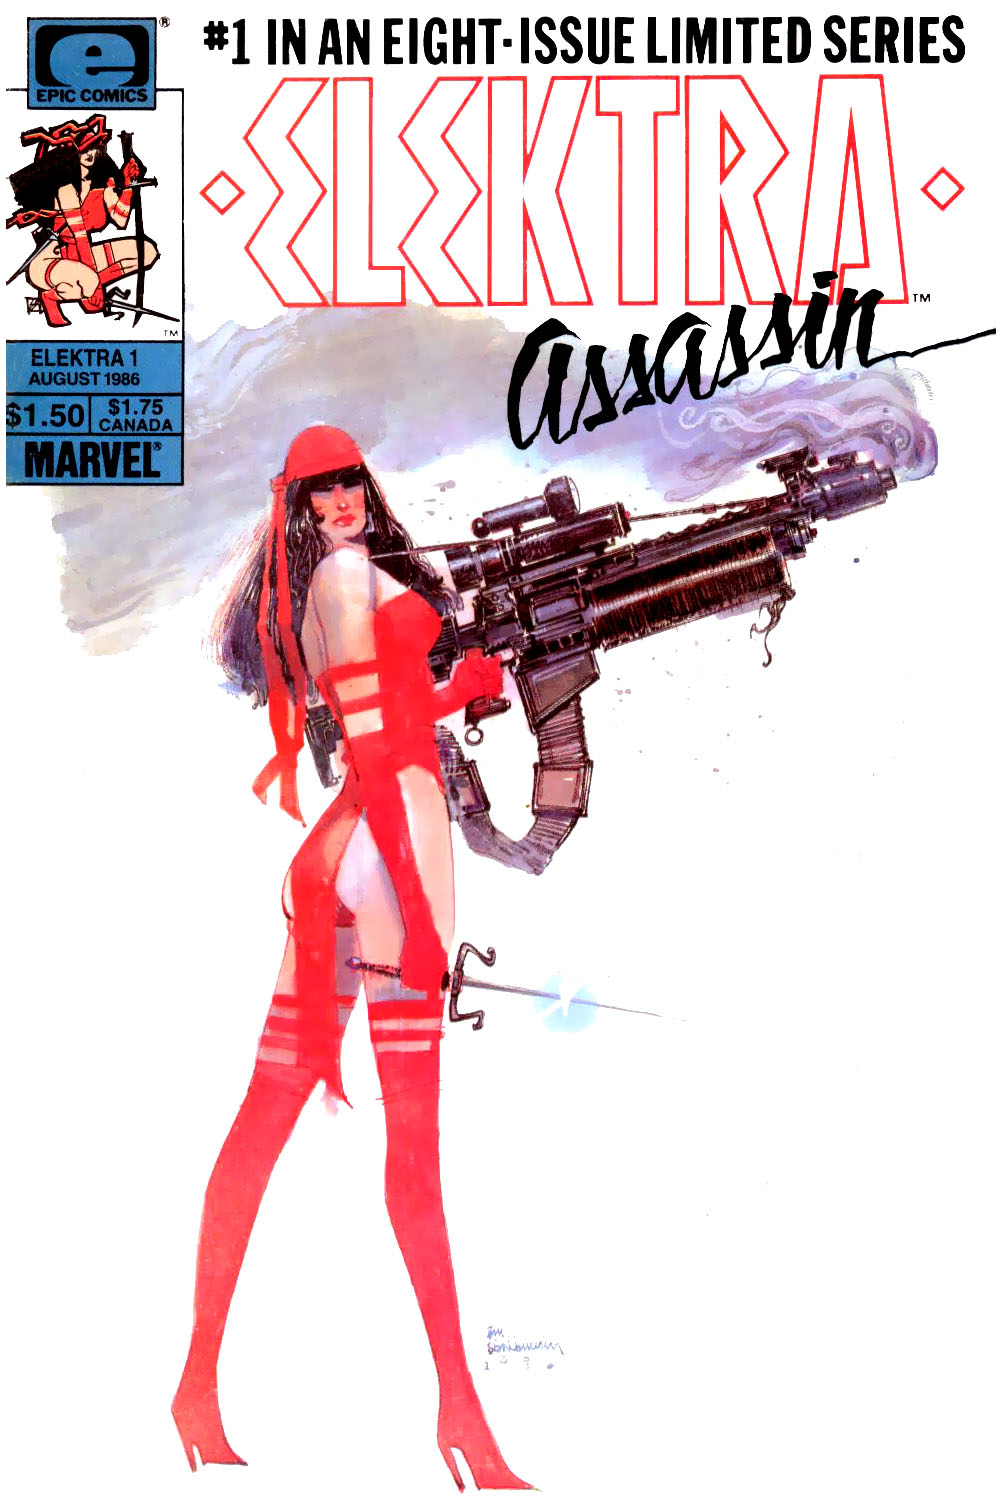 Elektra - Assassin #1 - 00_Cover